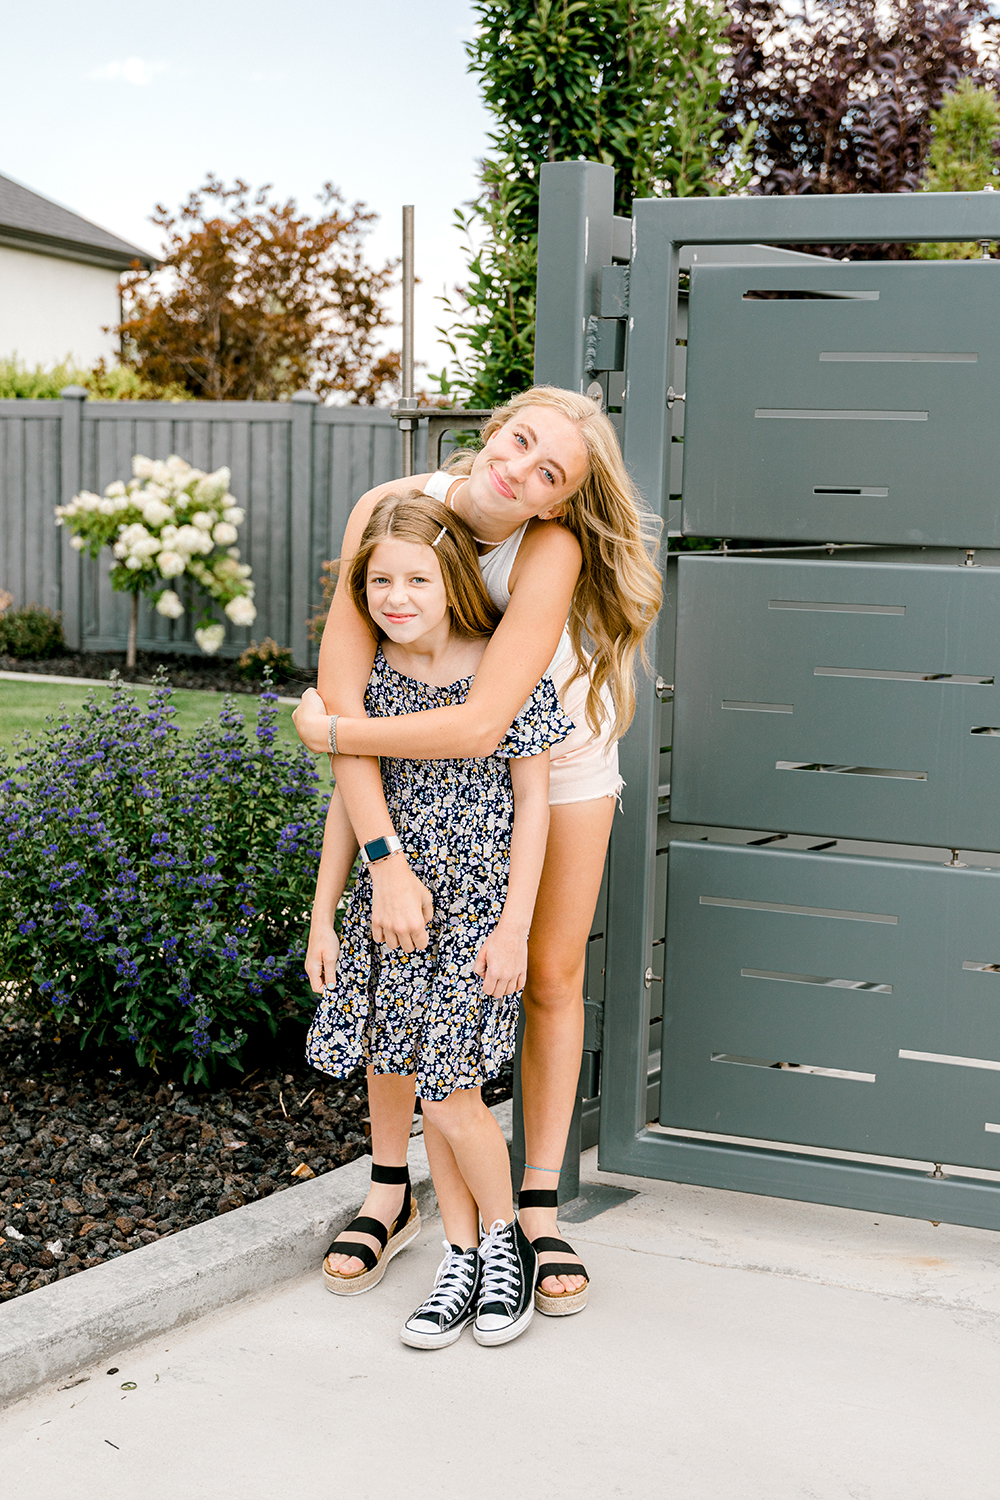 Kailee Wright JCpenny back to school clothes